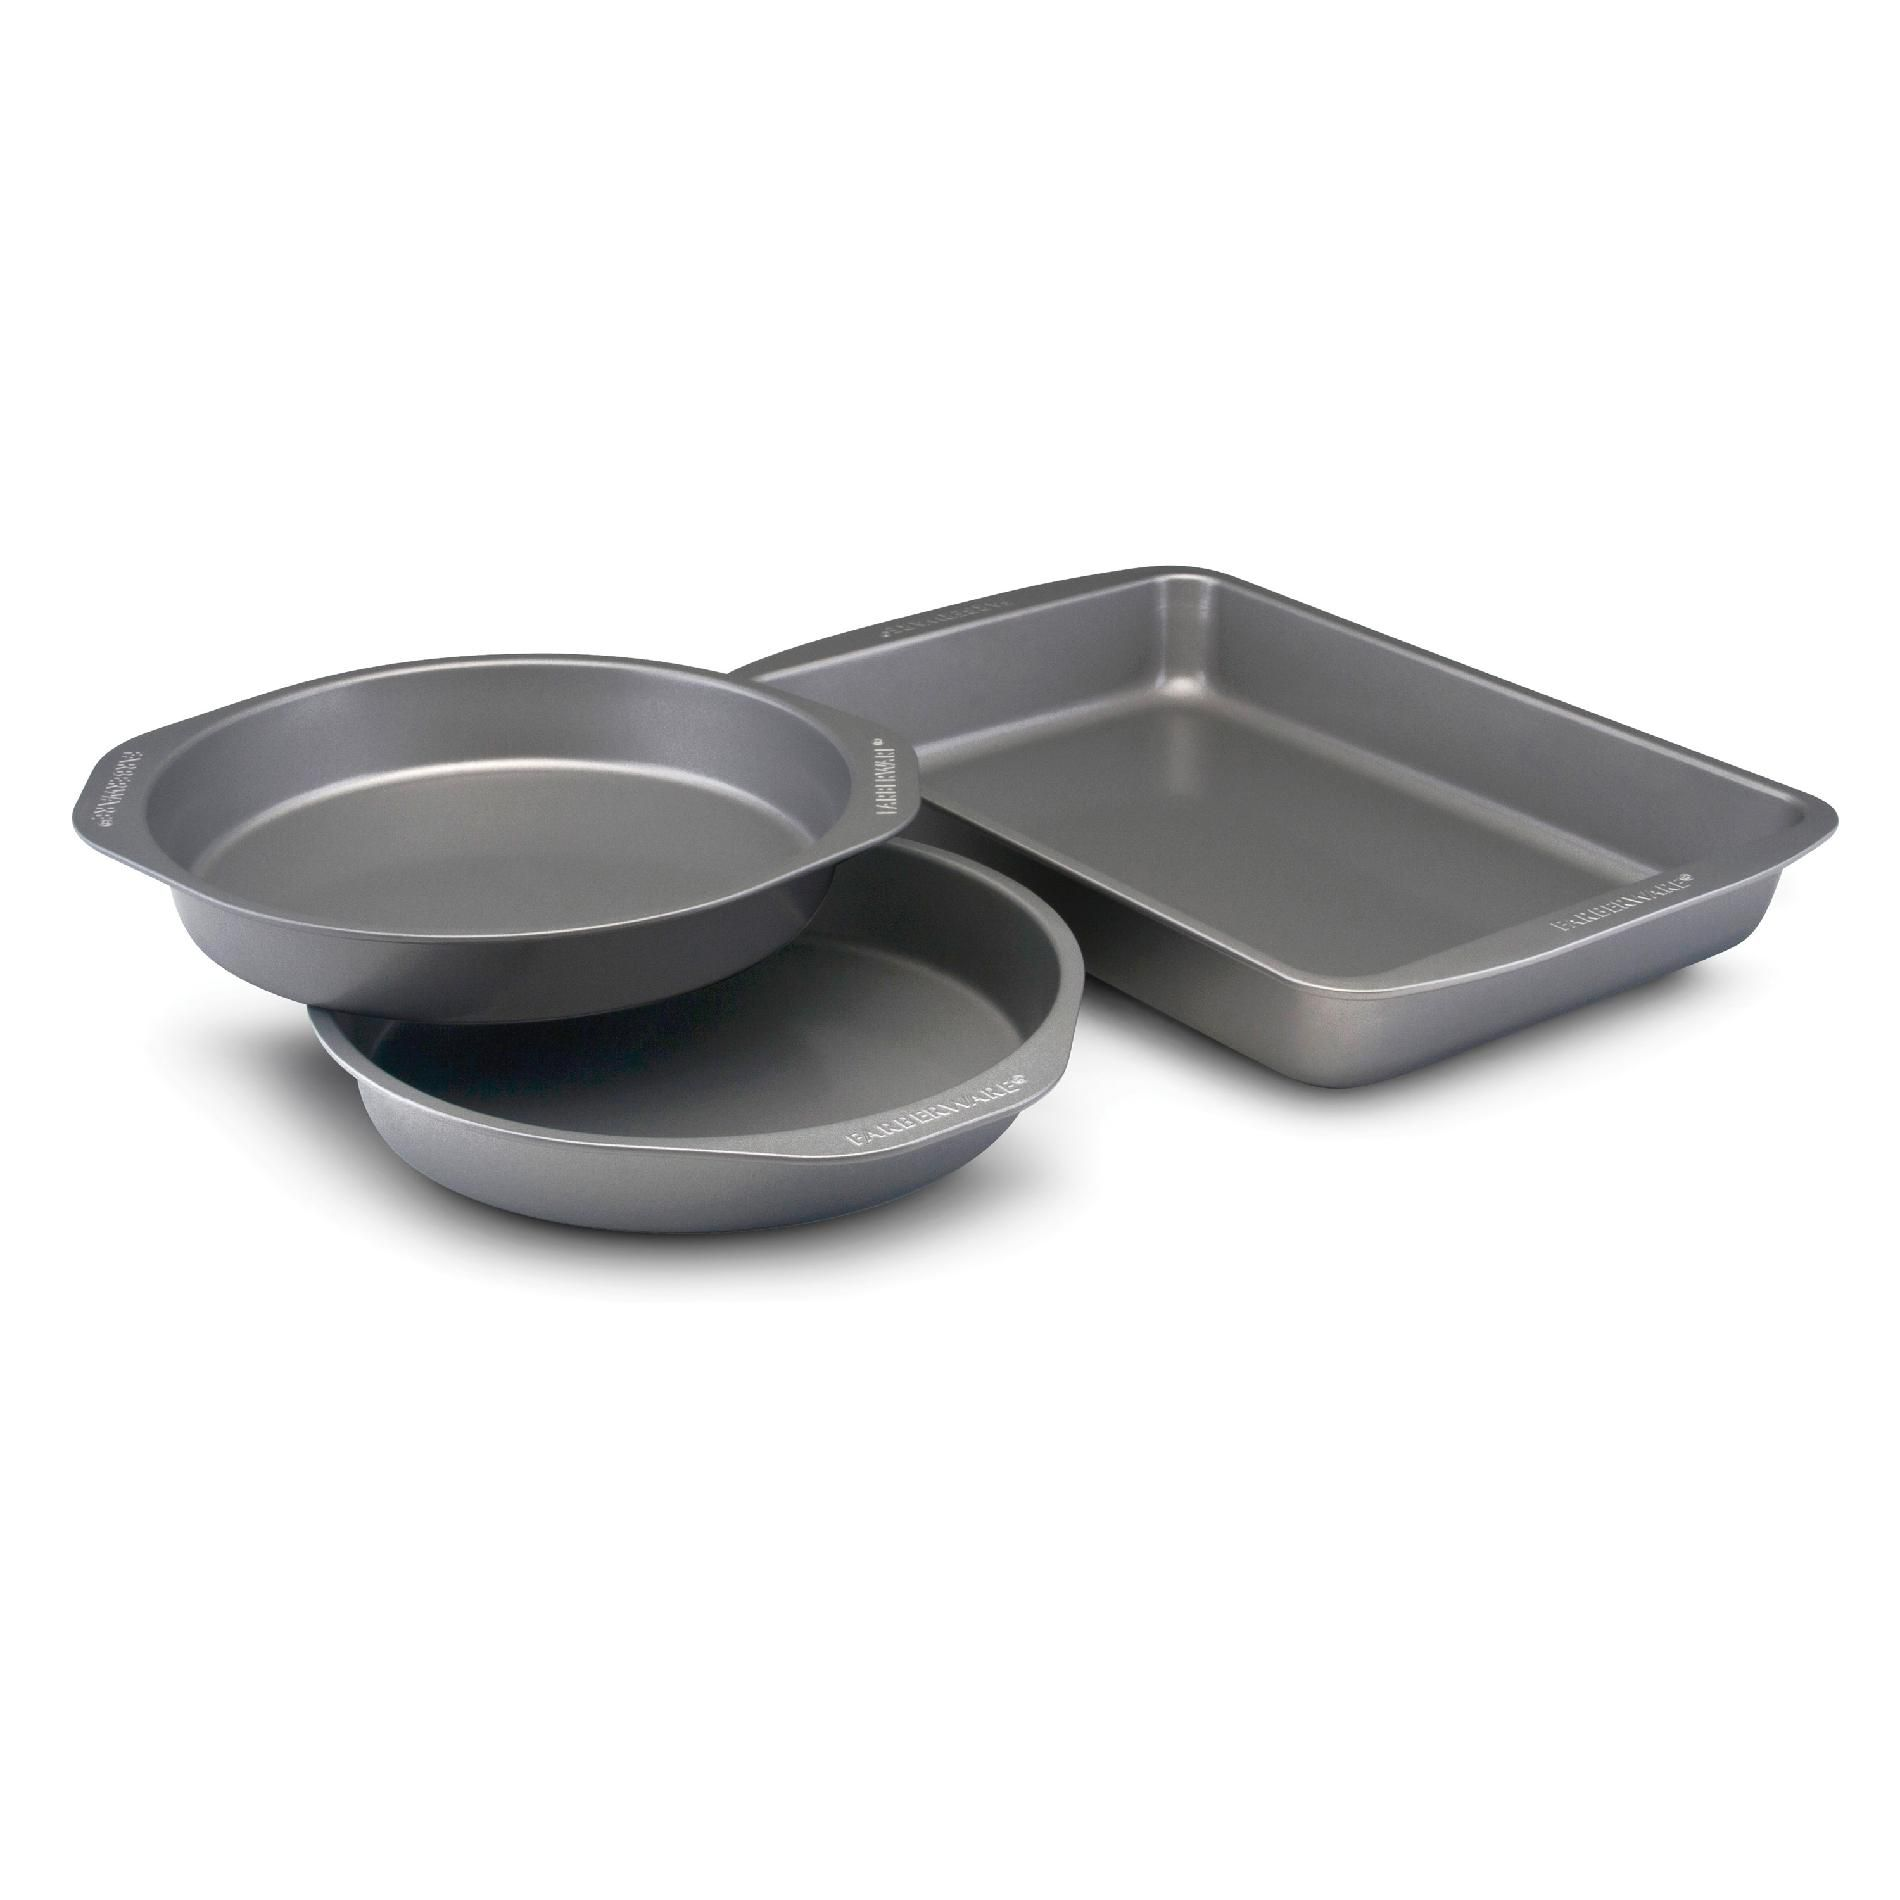 Bakeware, 3 Piece Set